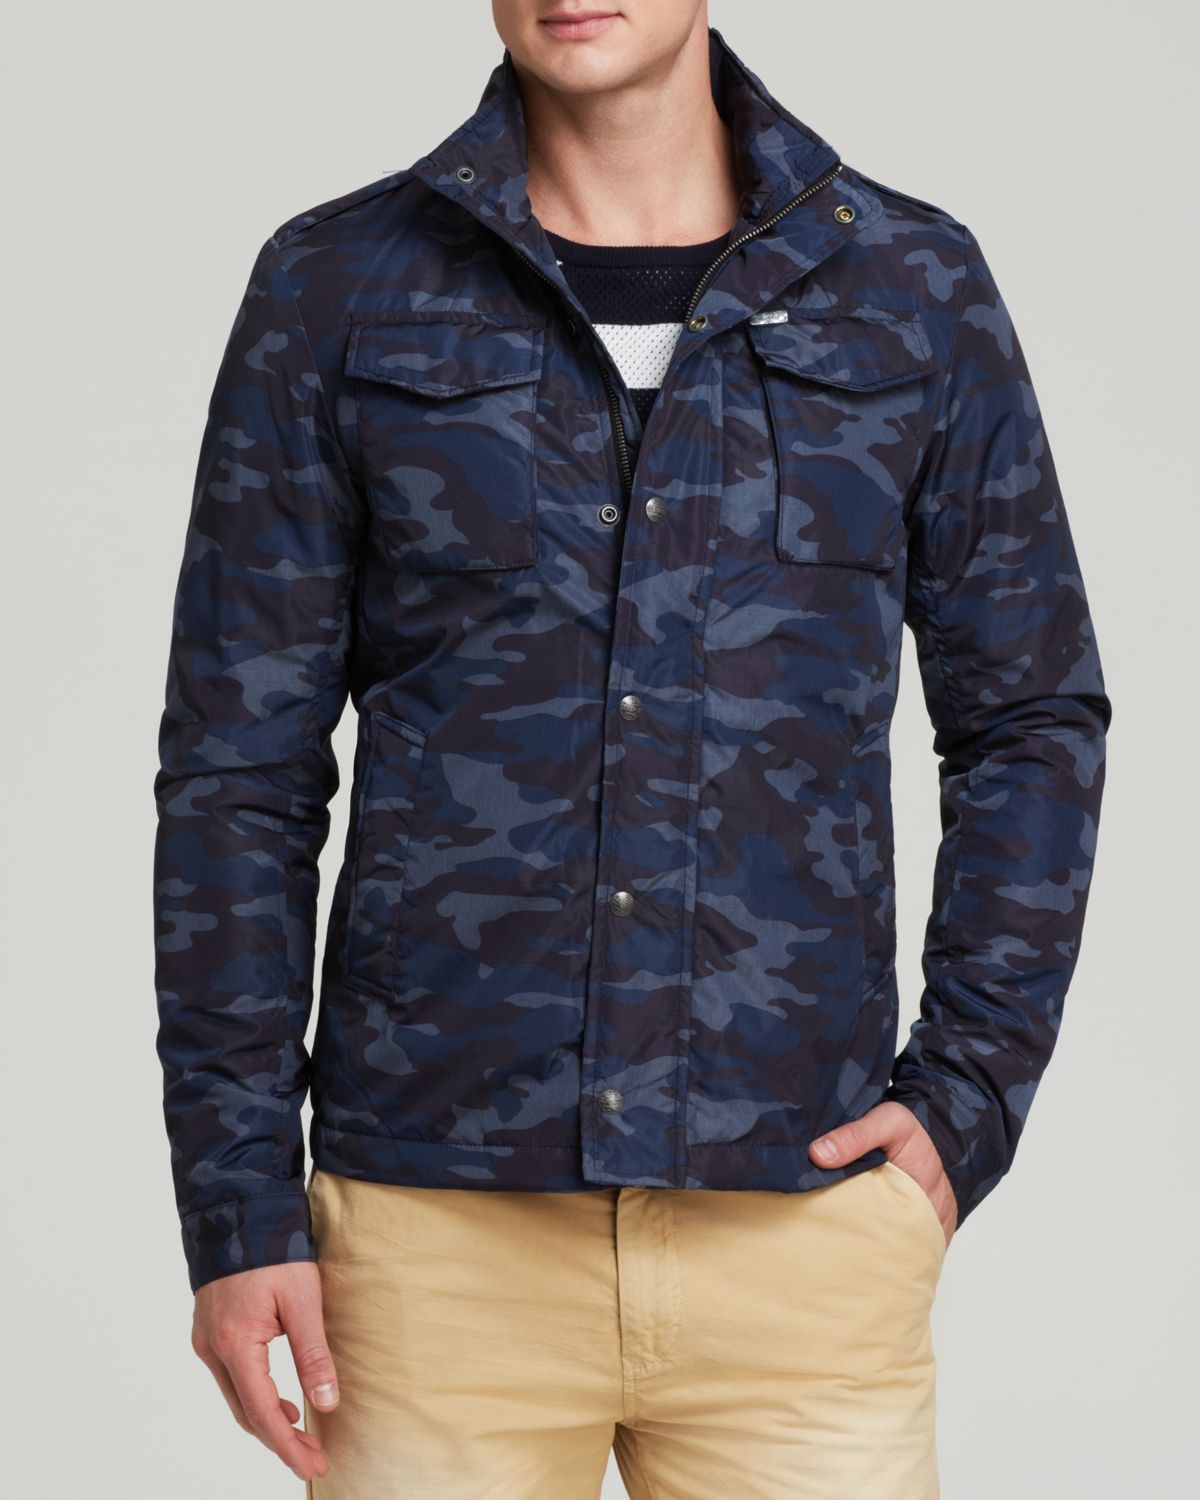 Scotch & soda Camo Nylon Military Jacket in Blue for Men | Lyst